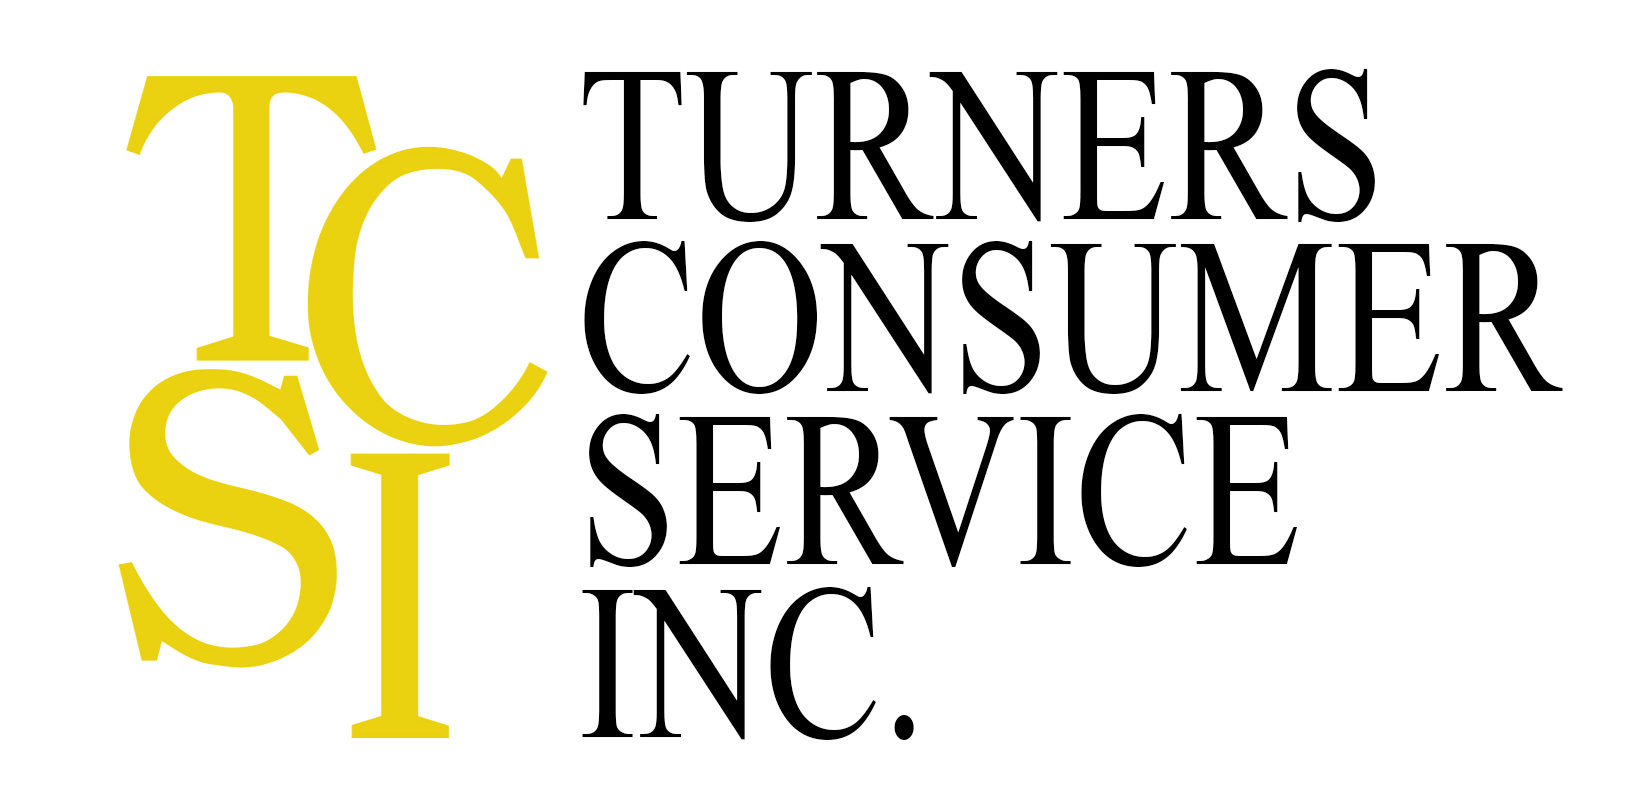 Turners Consumer Service, Inc.